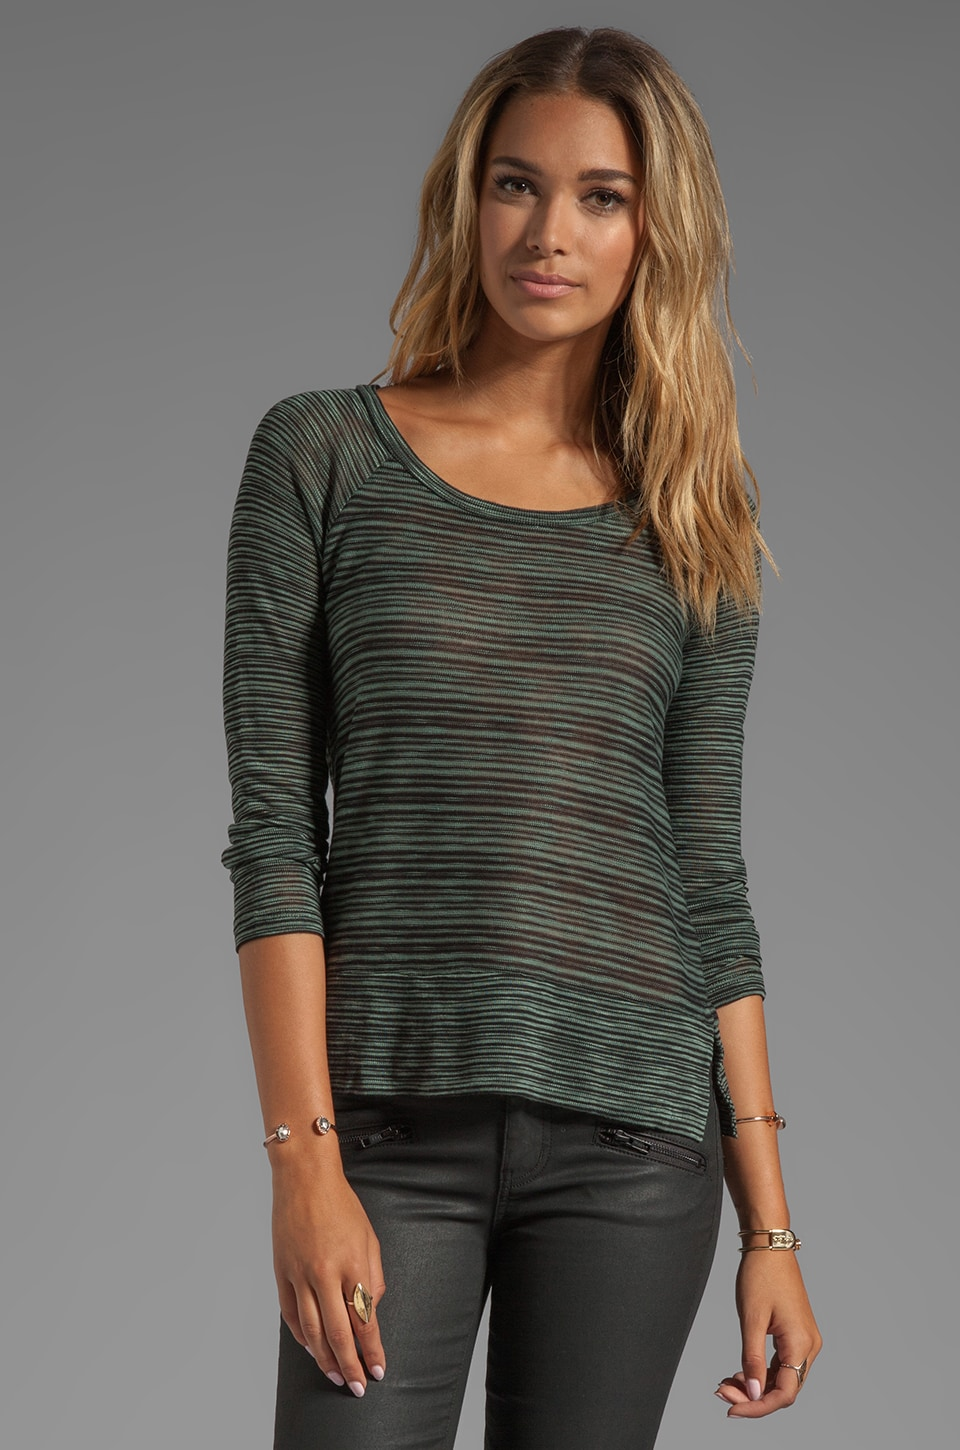 Splendid West Village Loose Knit Pullover in Camo/Black